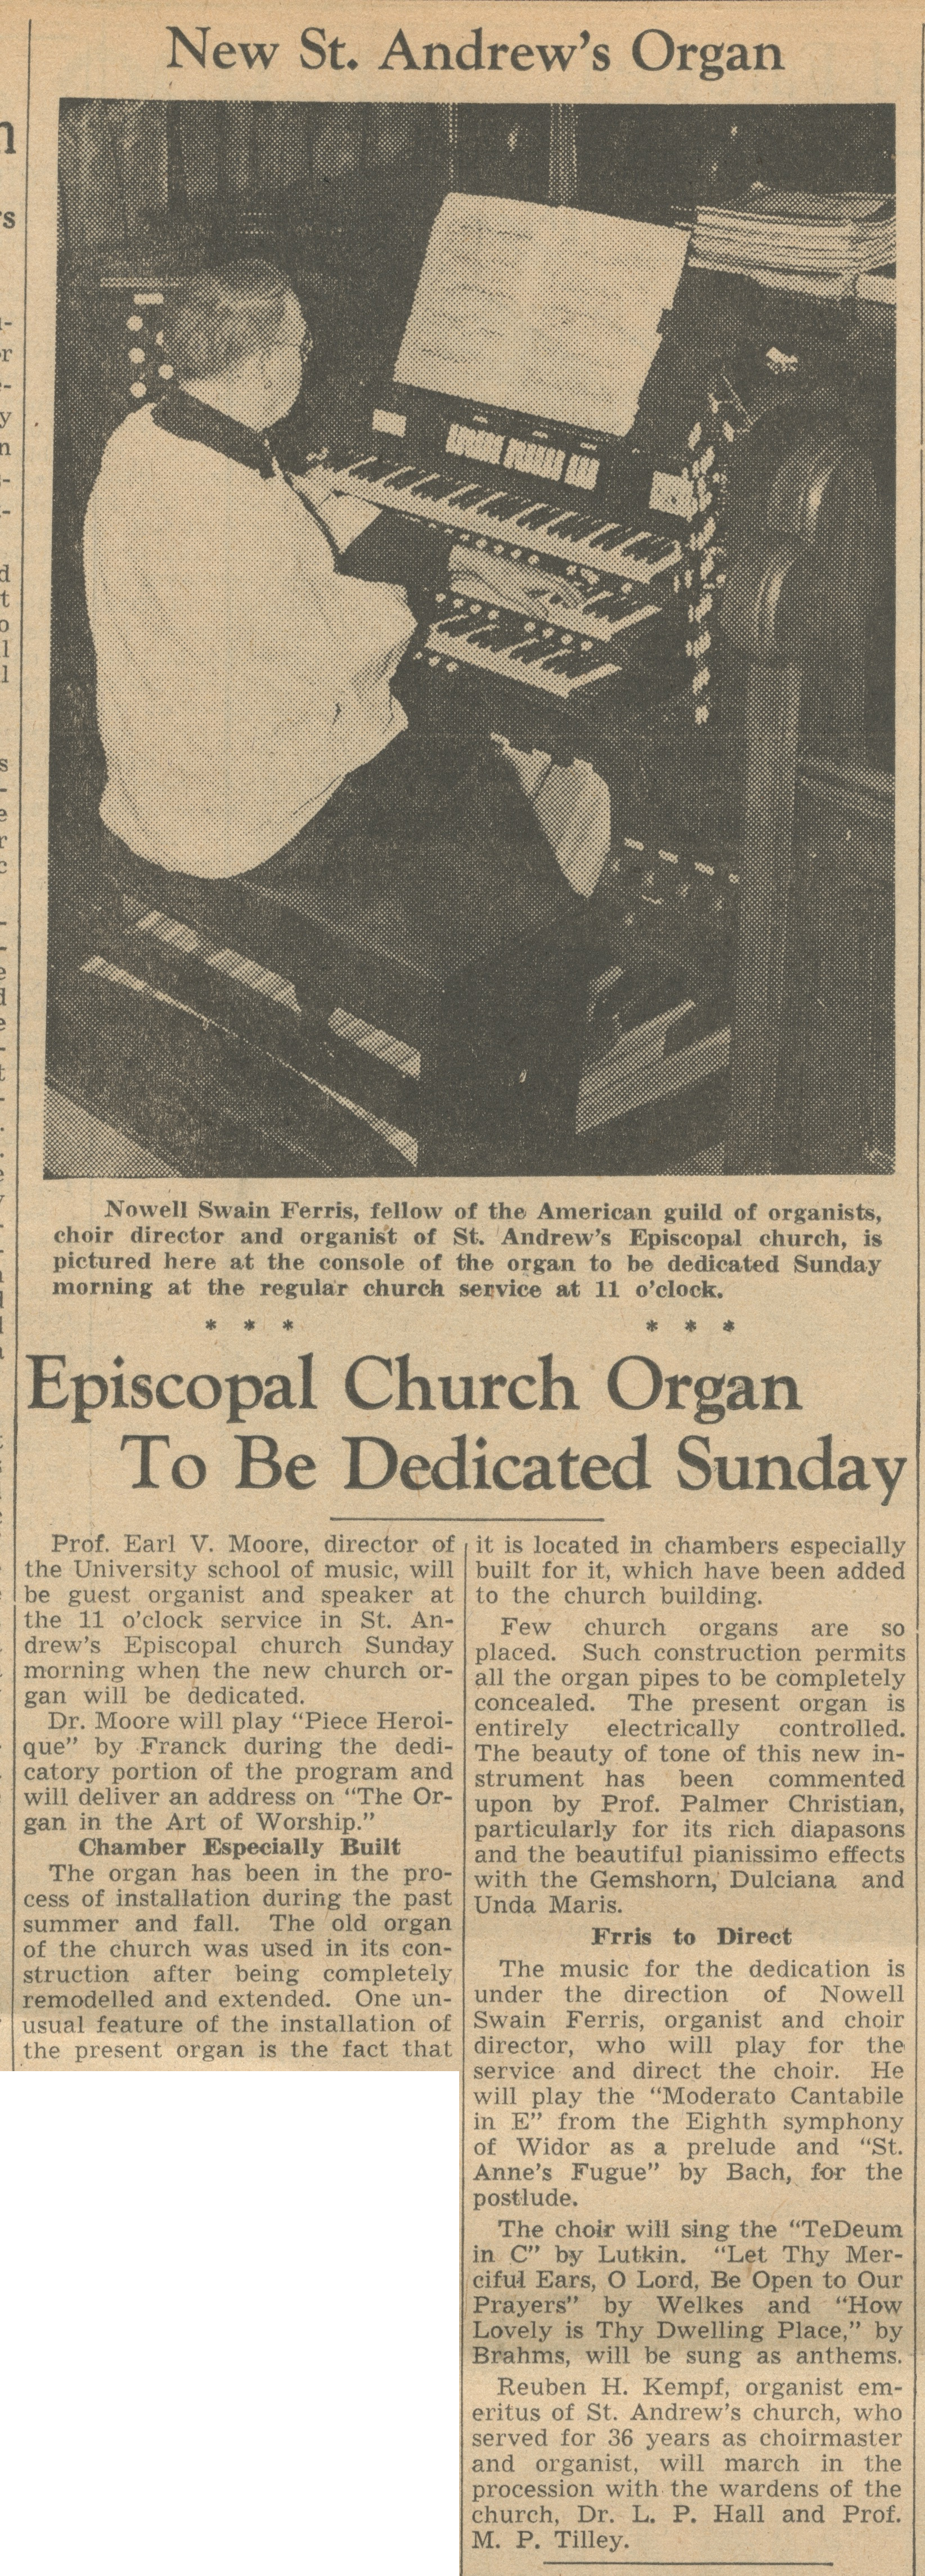 Episcopal Church Organ To Be Dedicated Sunday image